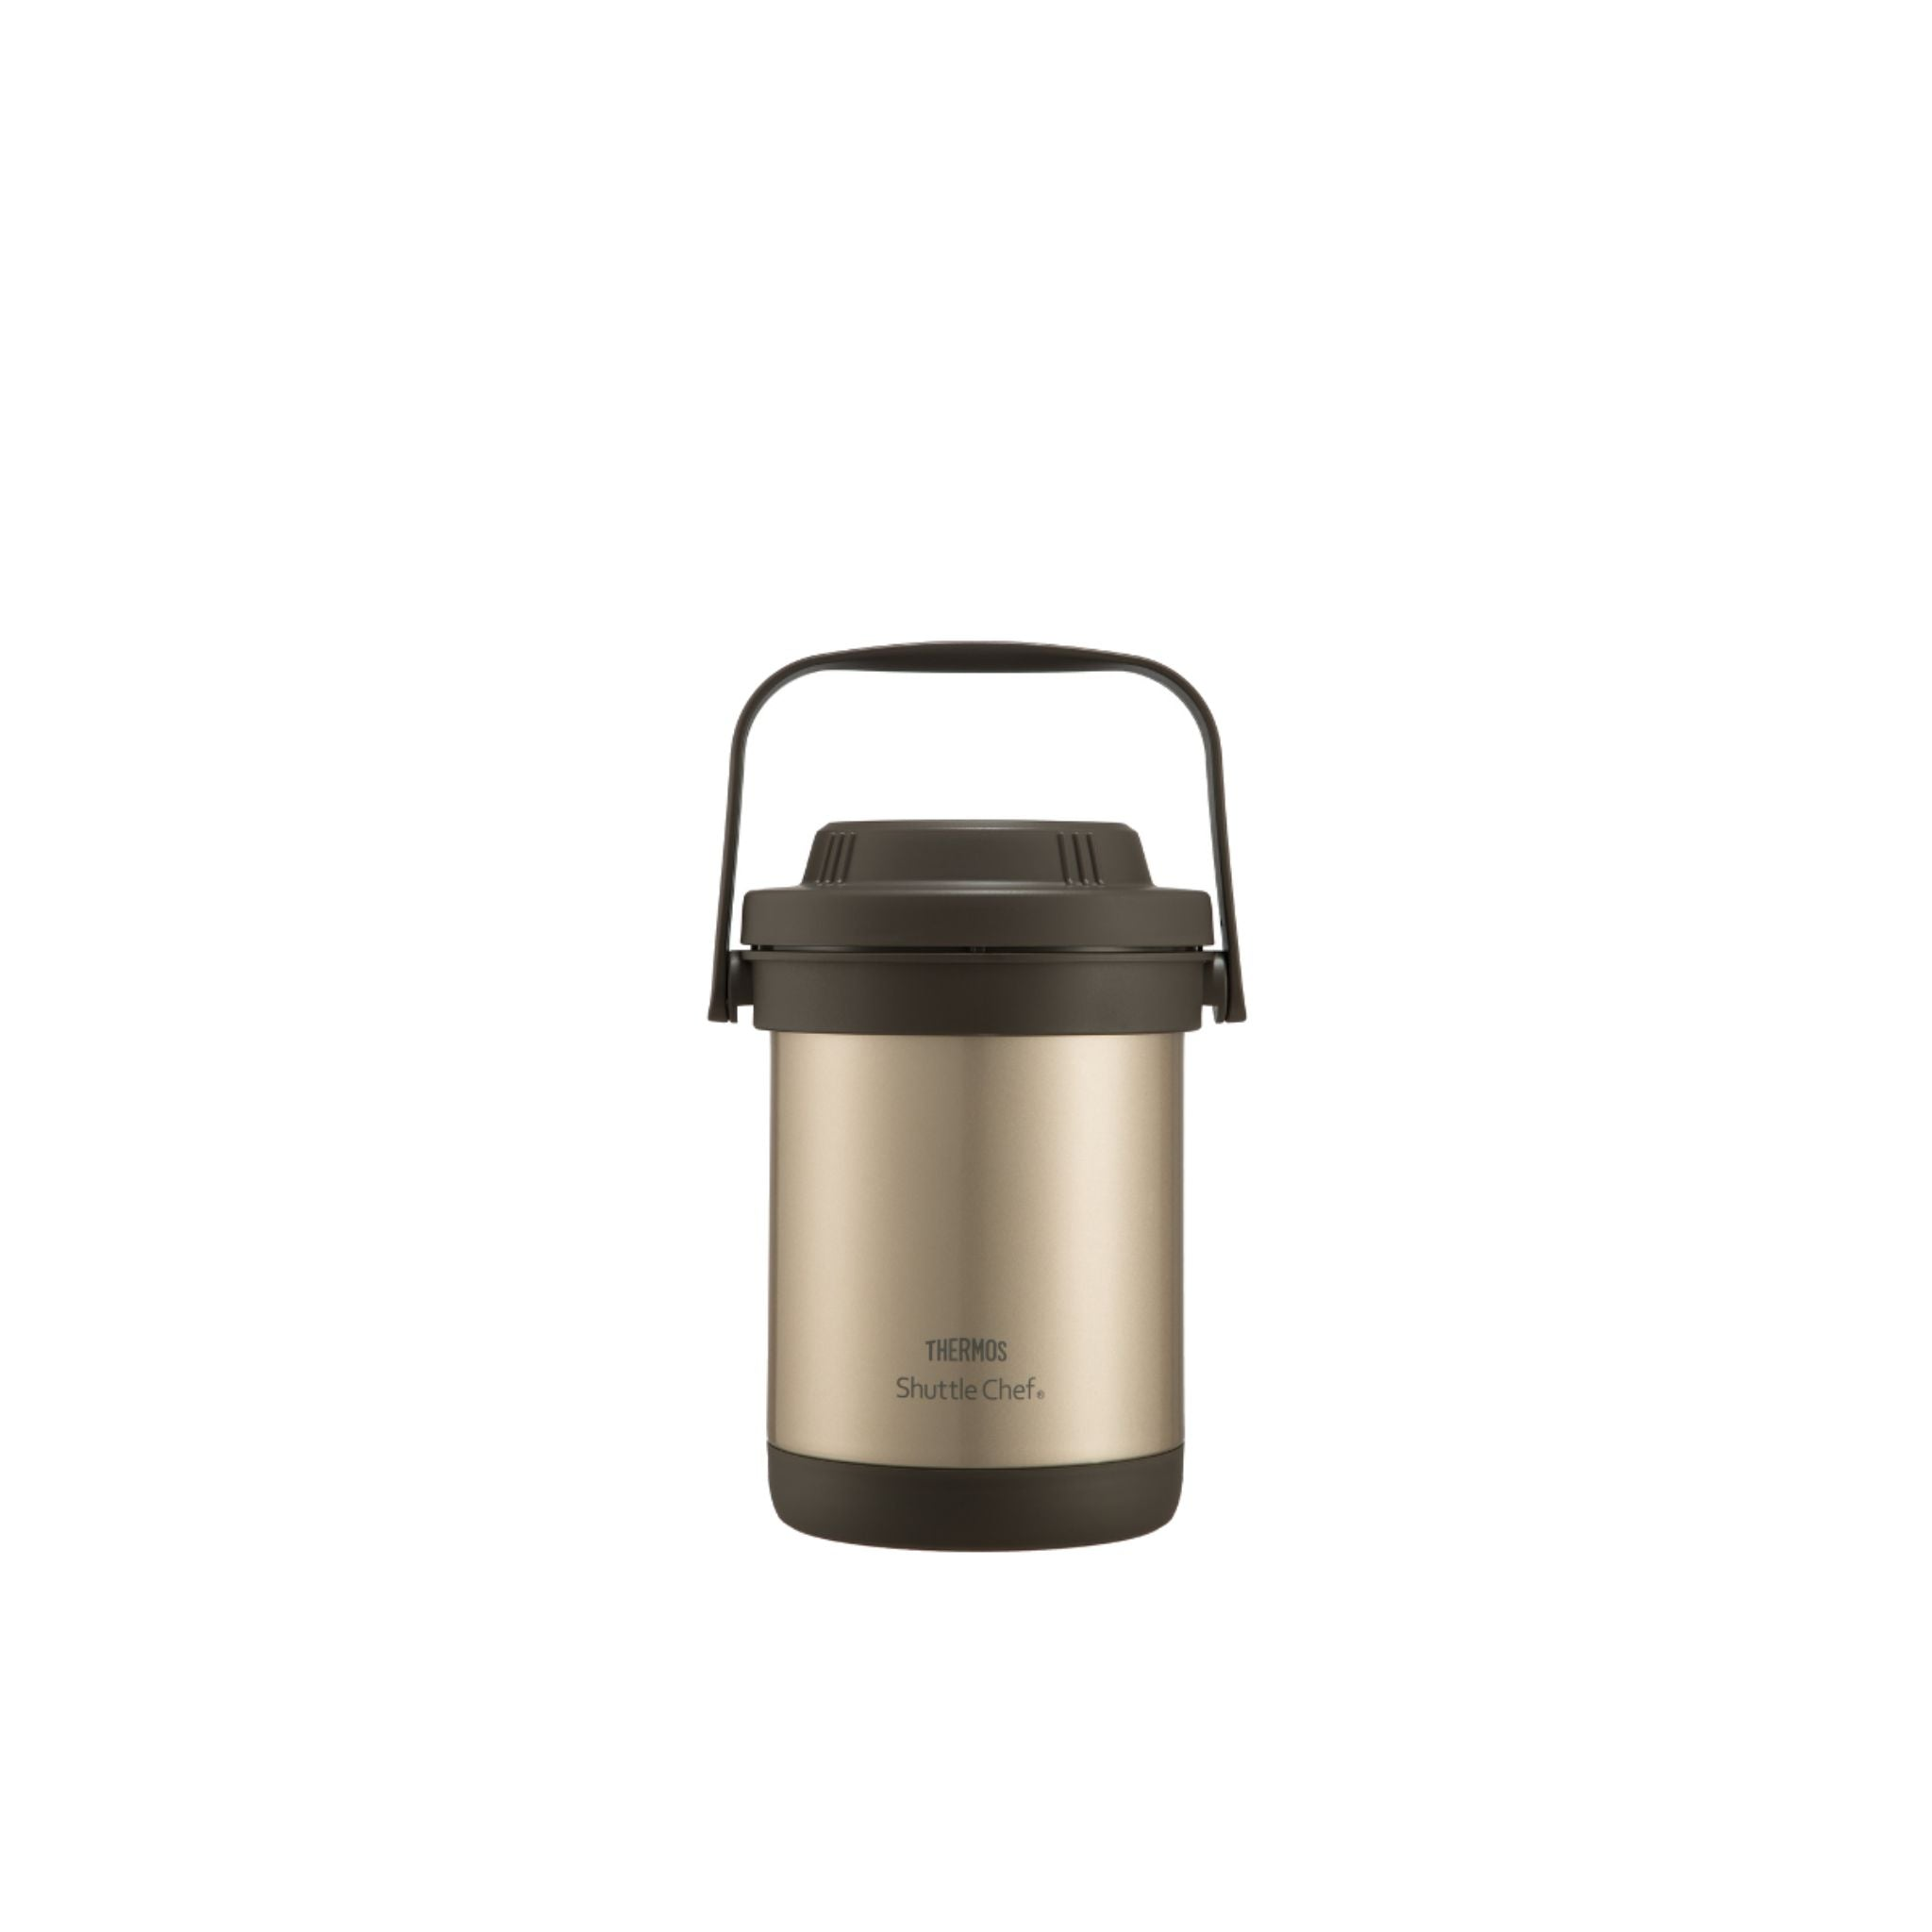 Thermos 1.8L Stainless Steel Vacuum Insulation Shuttle-chef - Gold